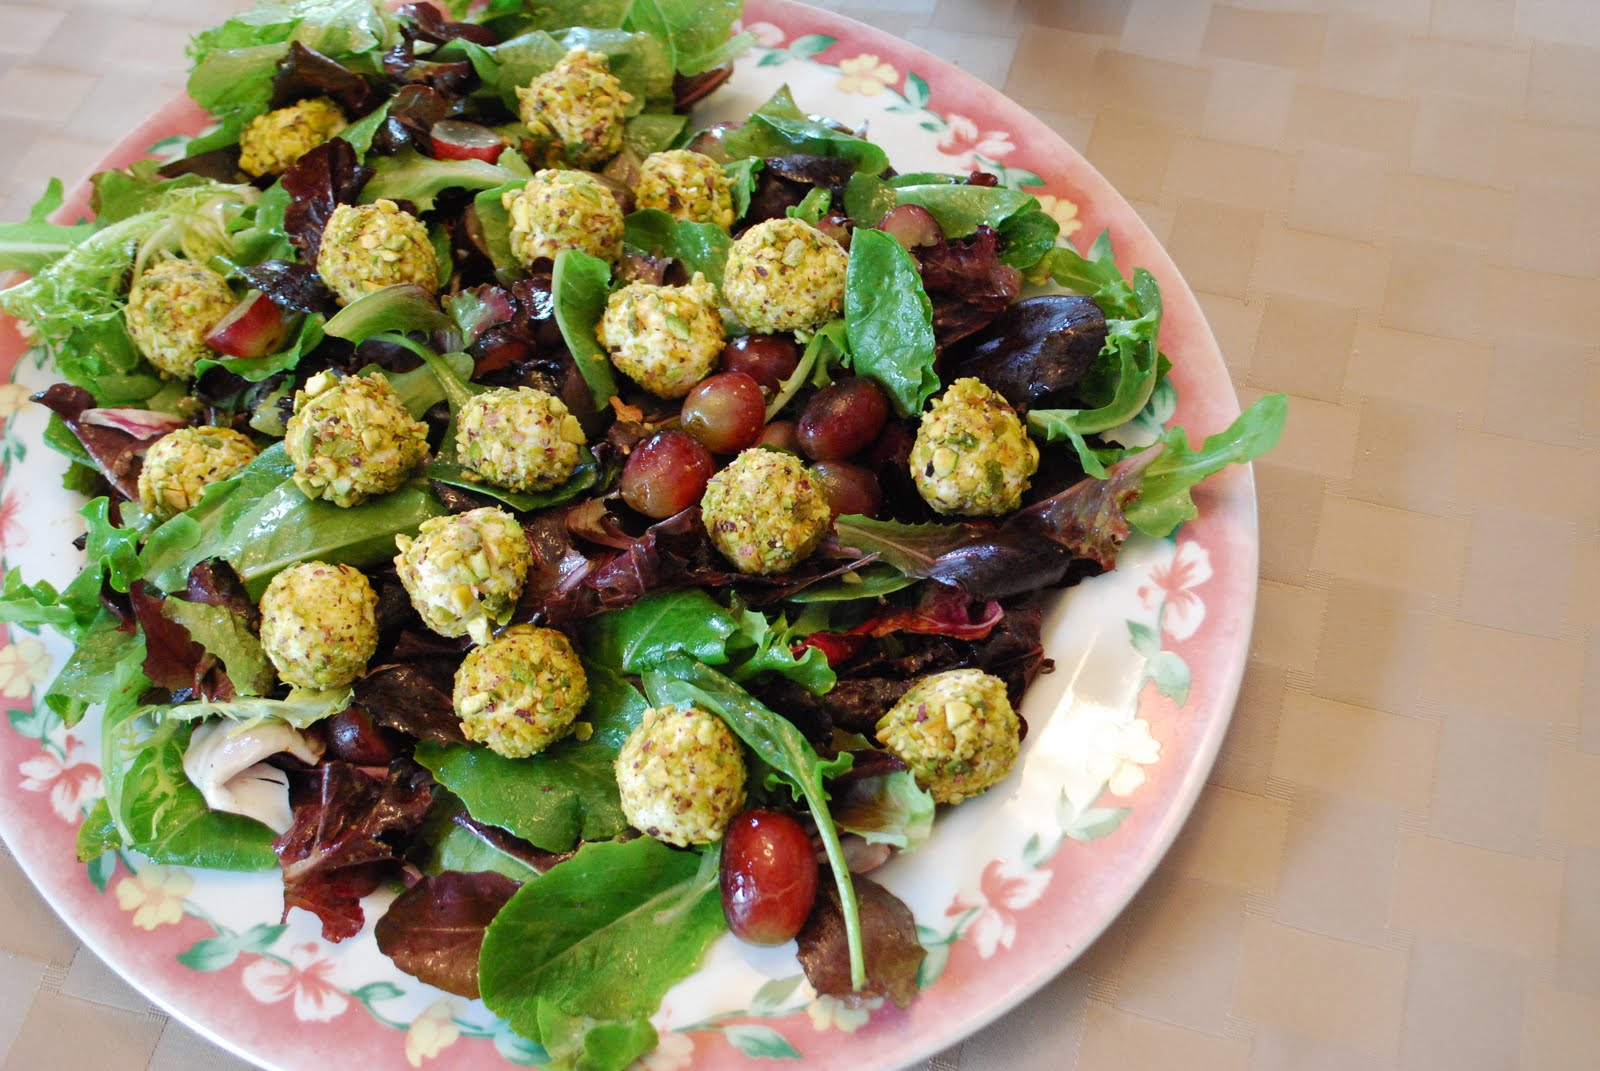 Spring salad with grapes and pistachio crusted goat cheese